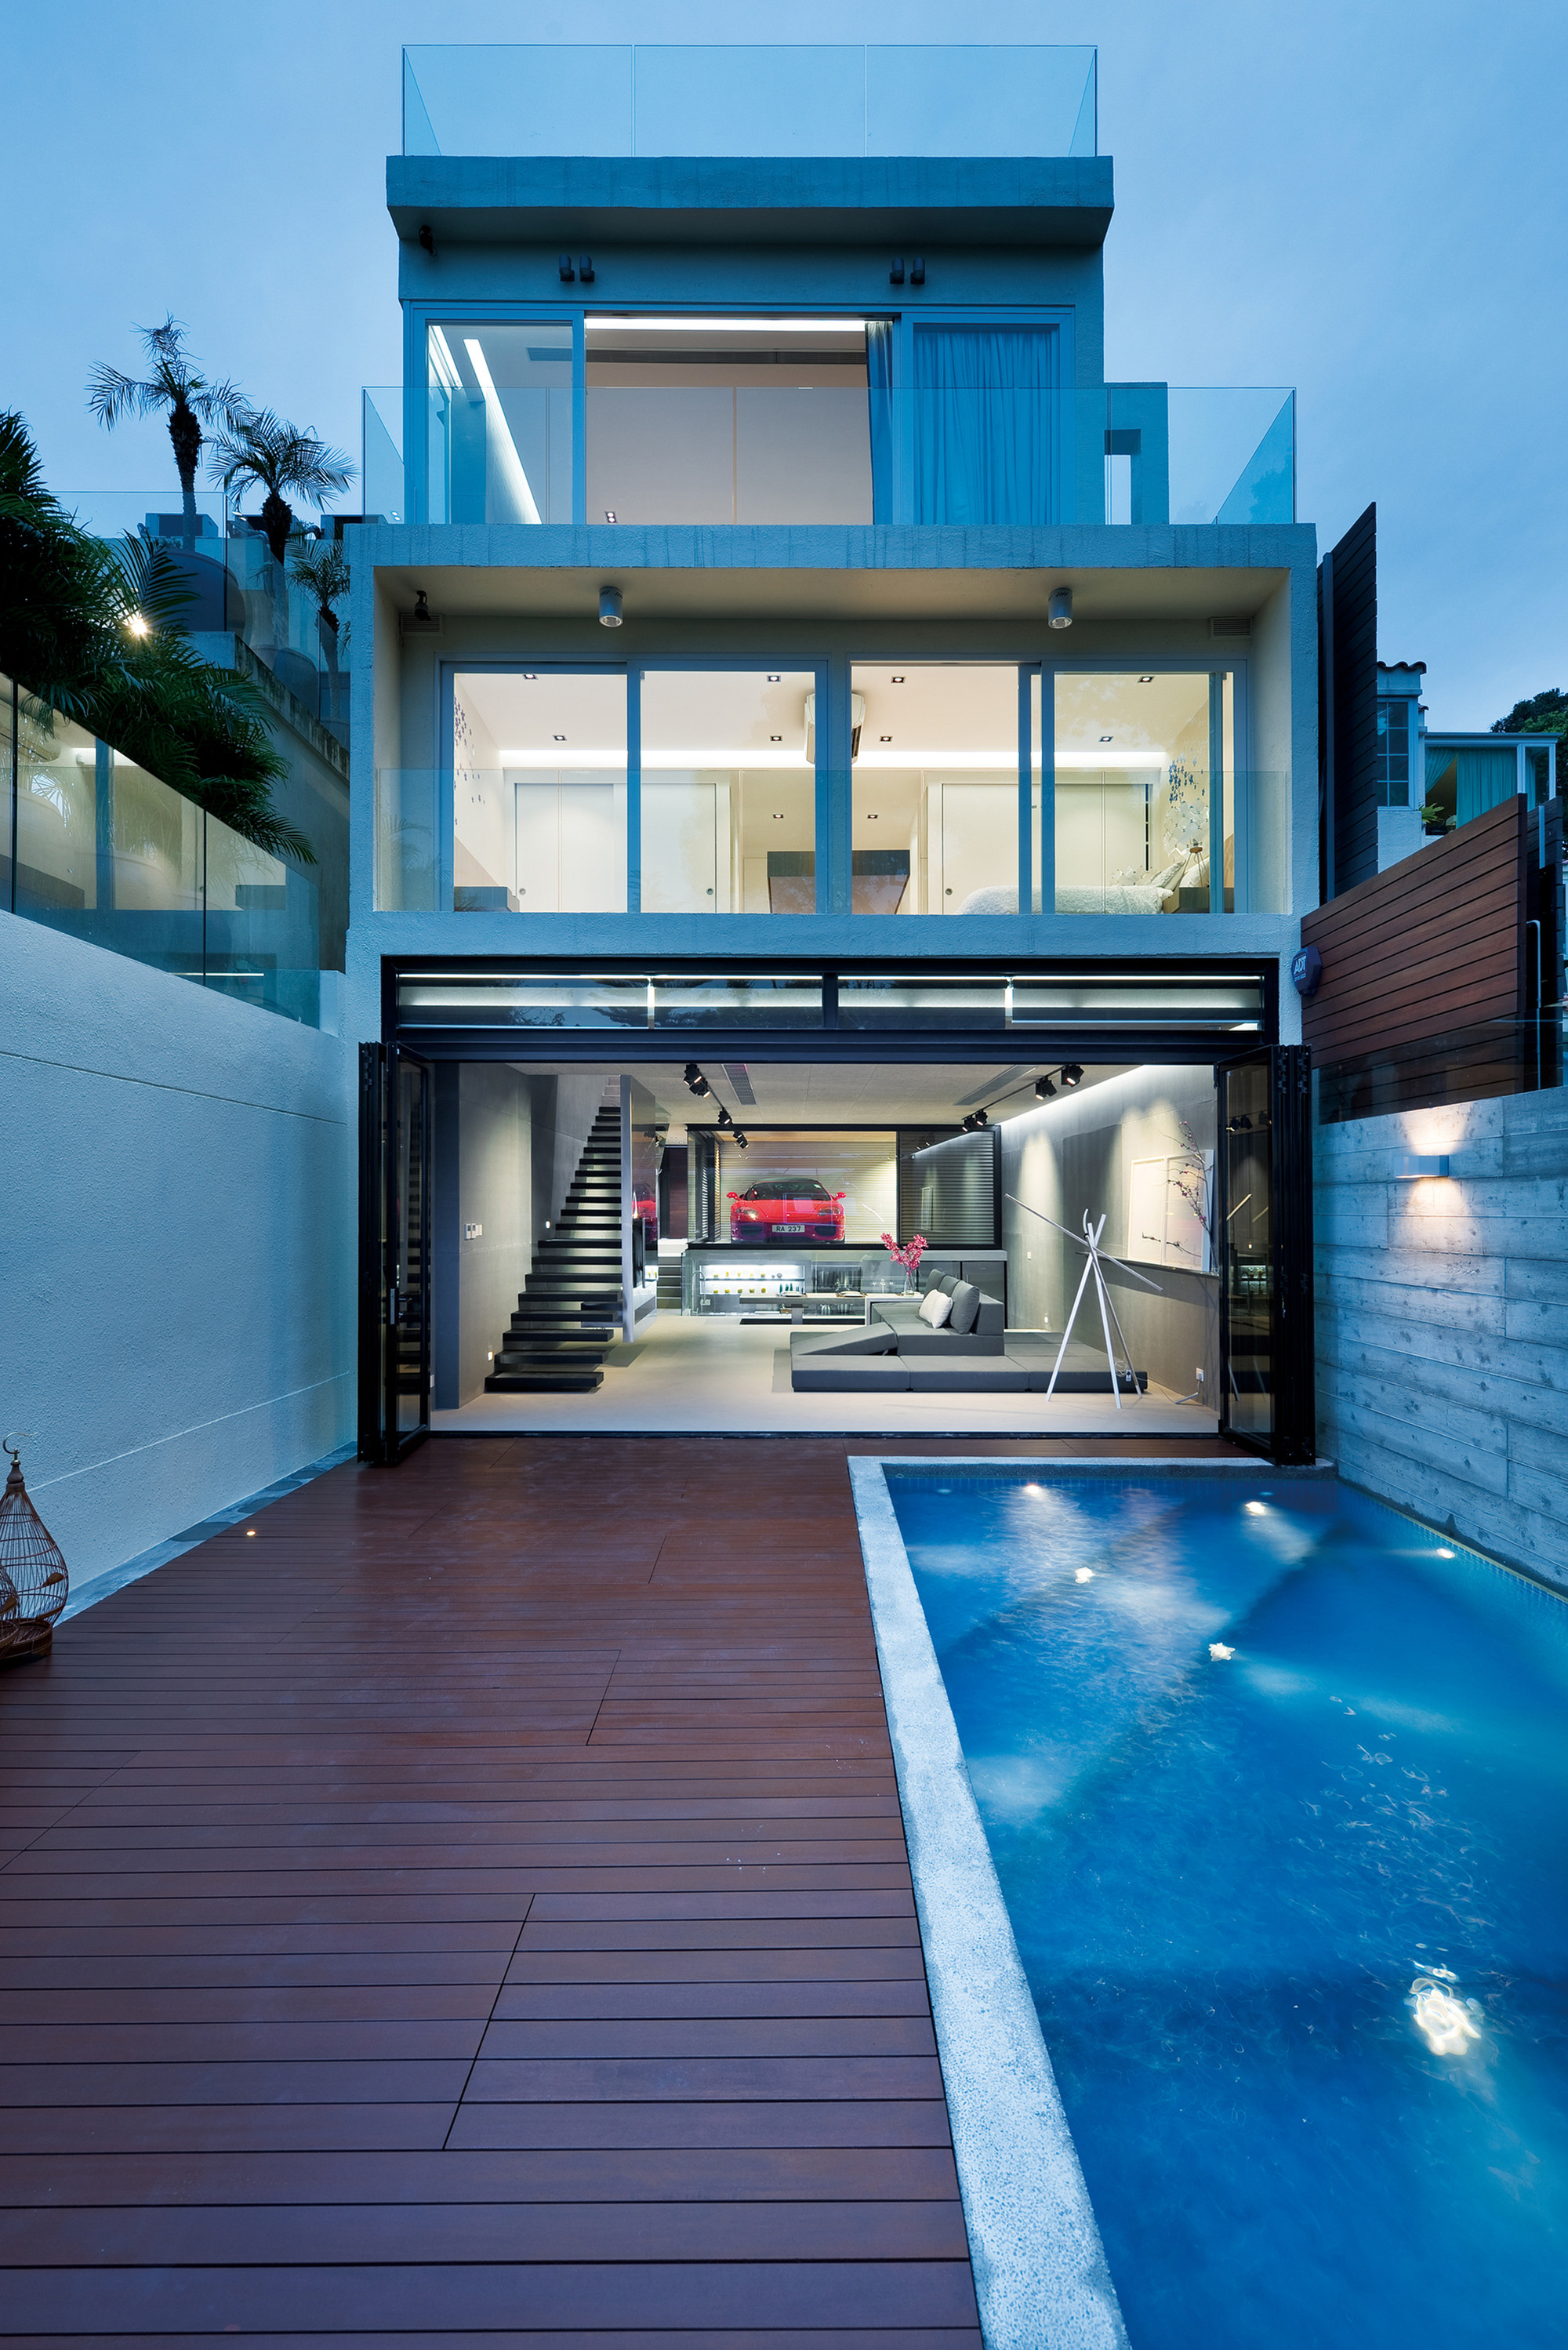 Gallery of House in Sai Kung / Millimeter Interior Design - 4